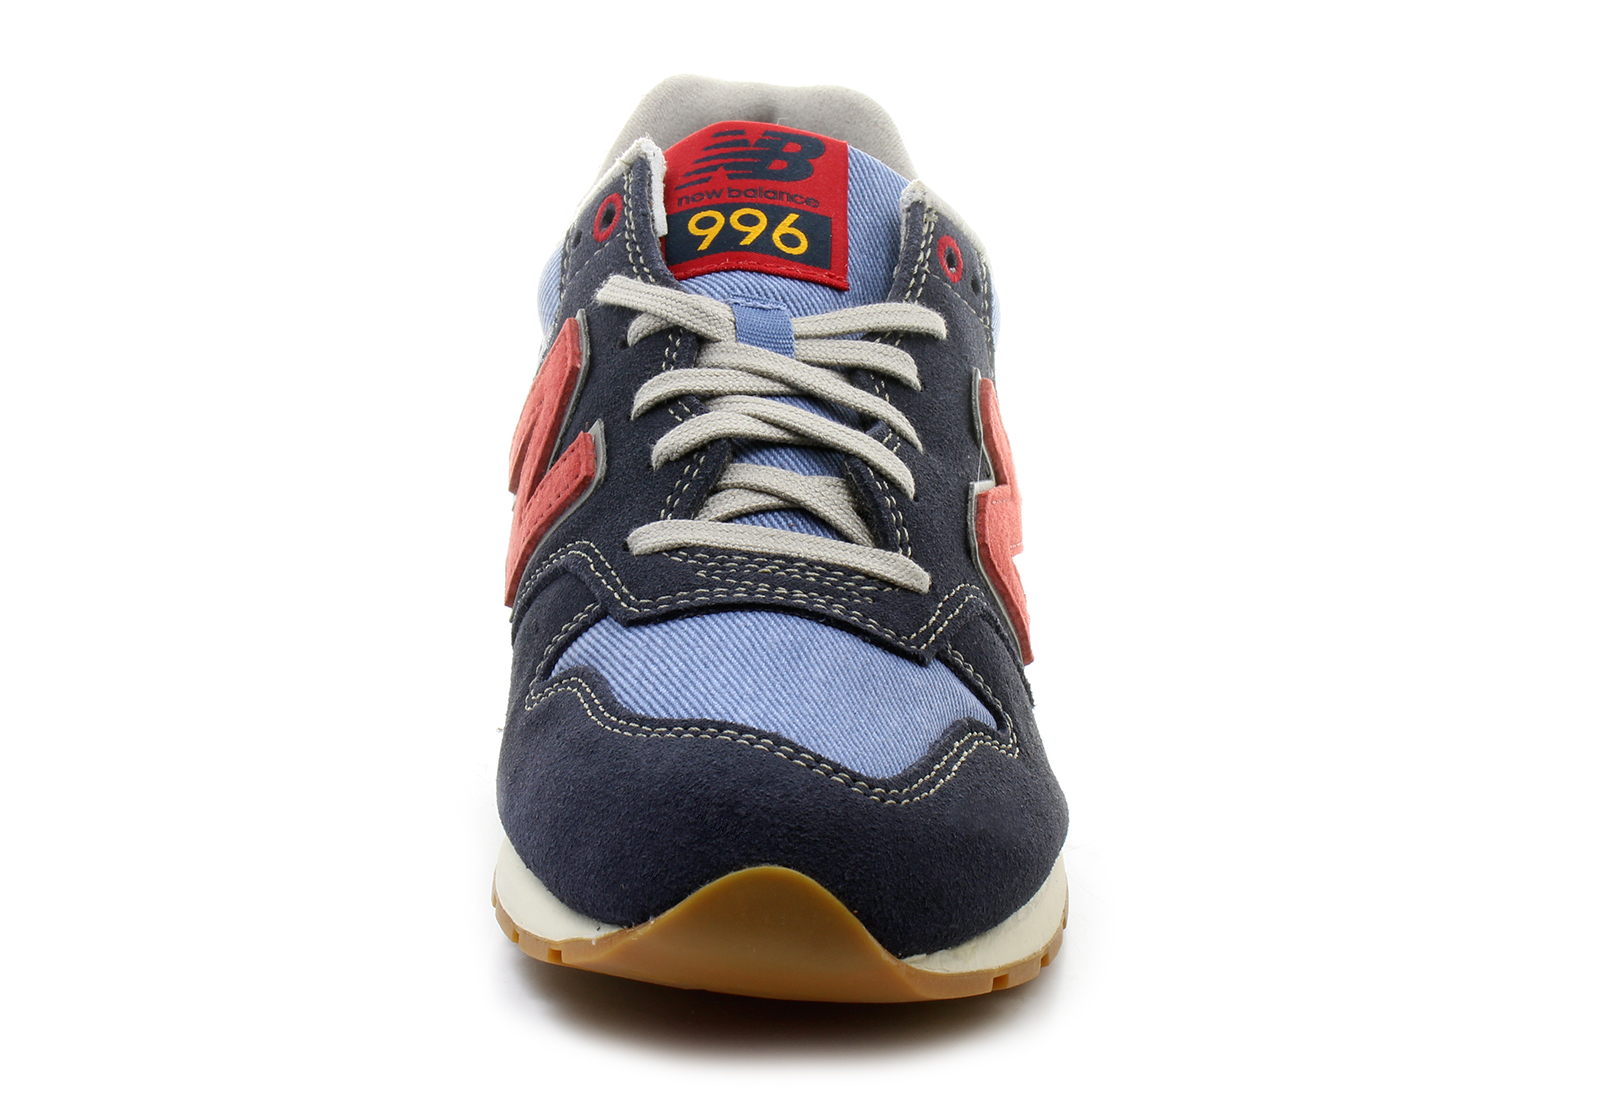 wholesale dealer c98fa b3ba5 New Balance Shoes - Mrl996 - MRL996NF - Online shop for sneakers, shoes and  boots